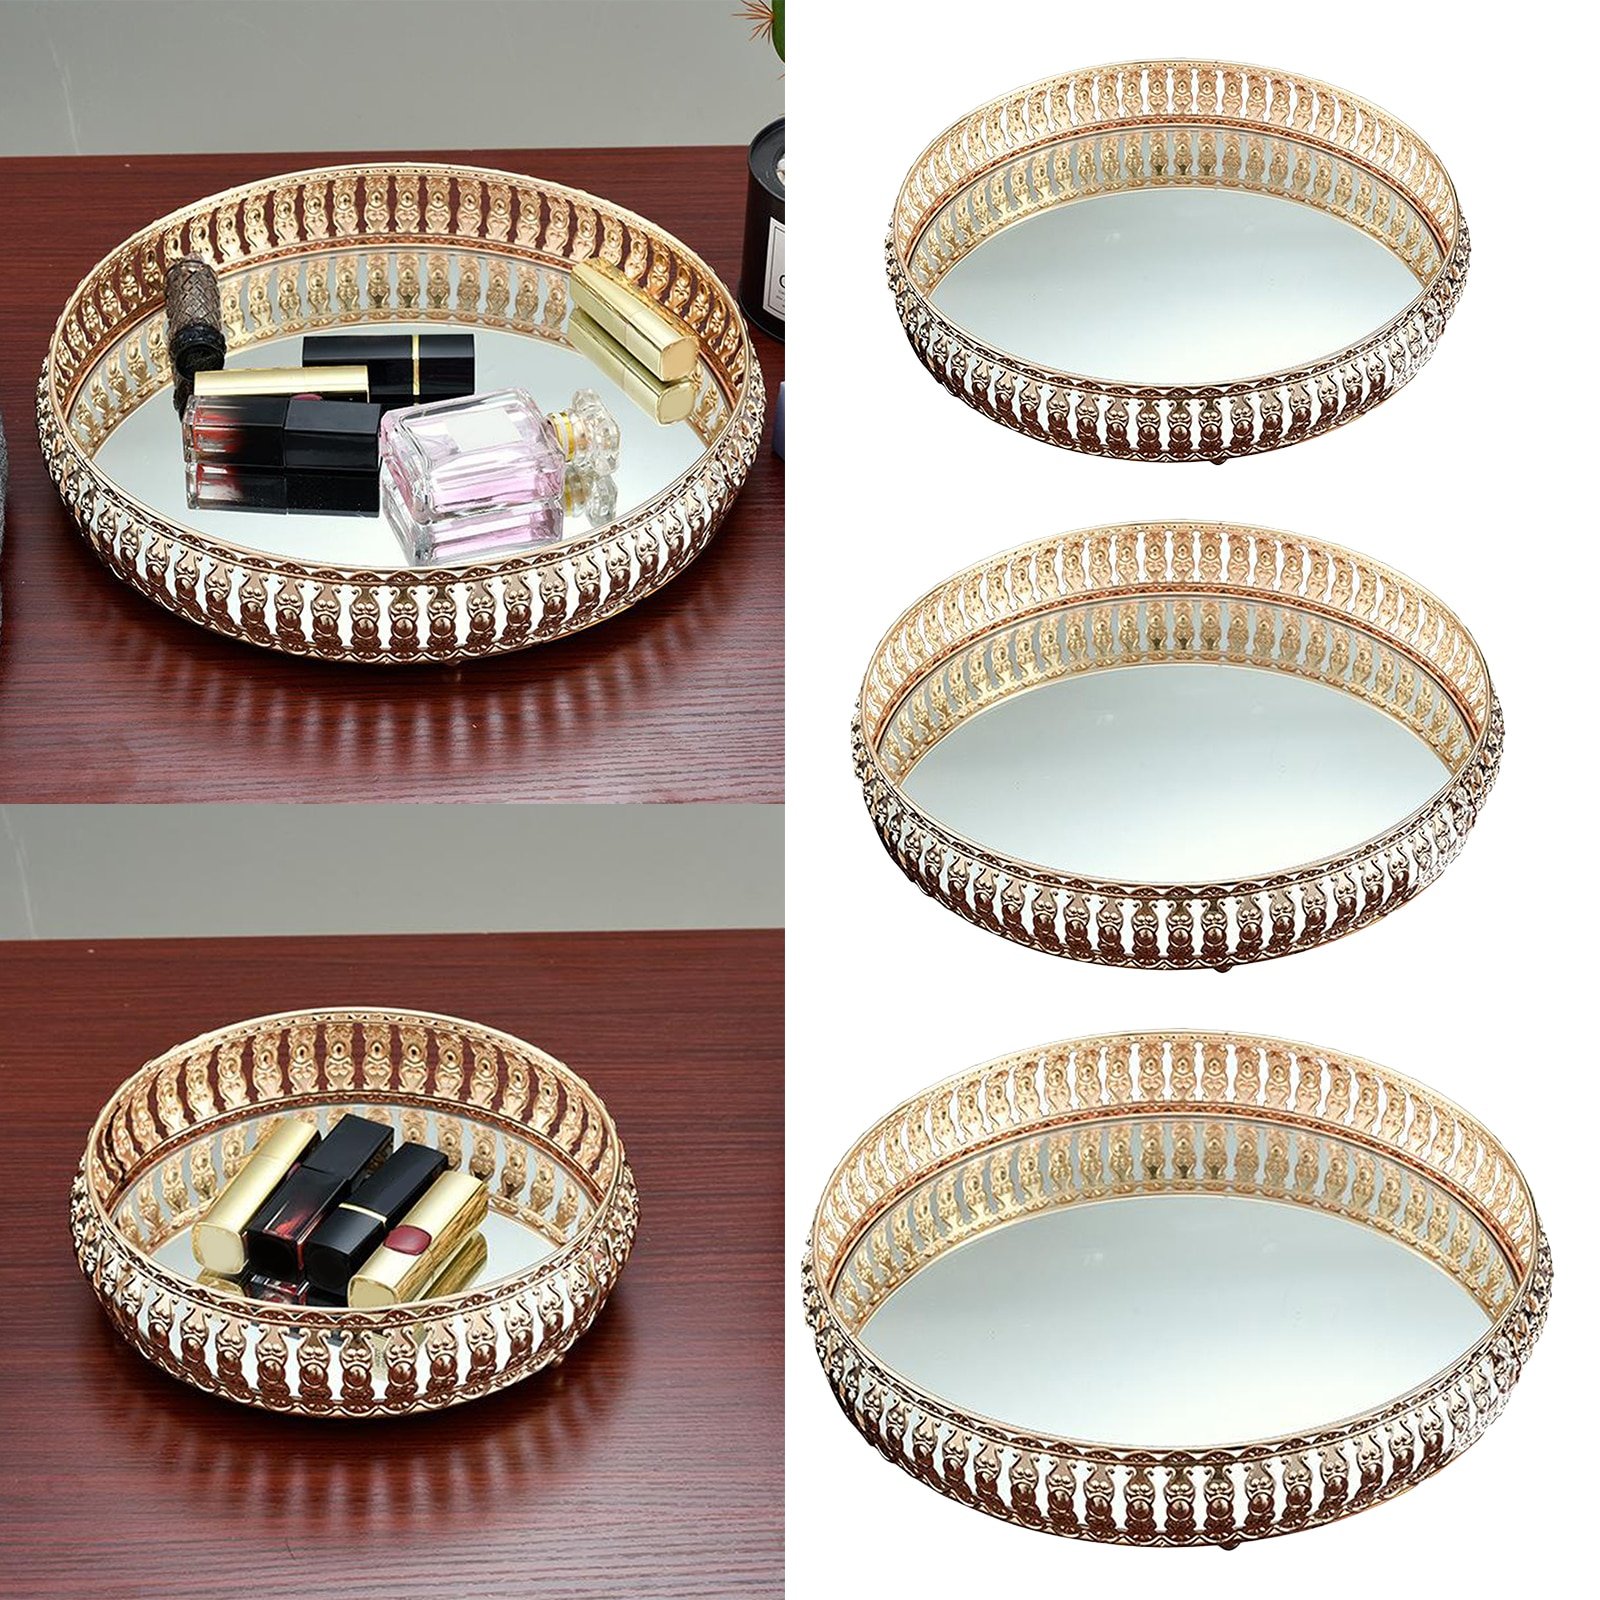 Luxury Mirror Glass Metal Storage Tray Gold Round Fruit Plate Desktop Small Items Jewelry Display Tray Plate